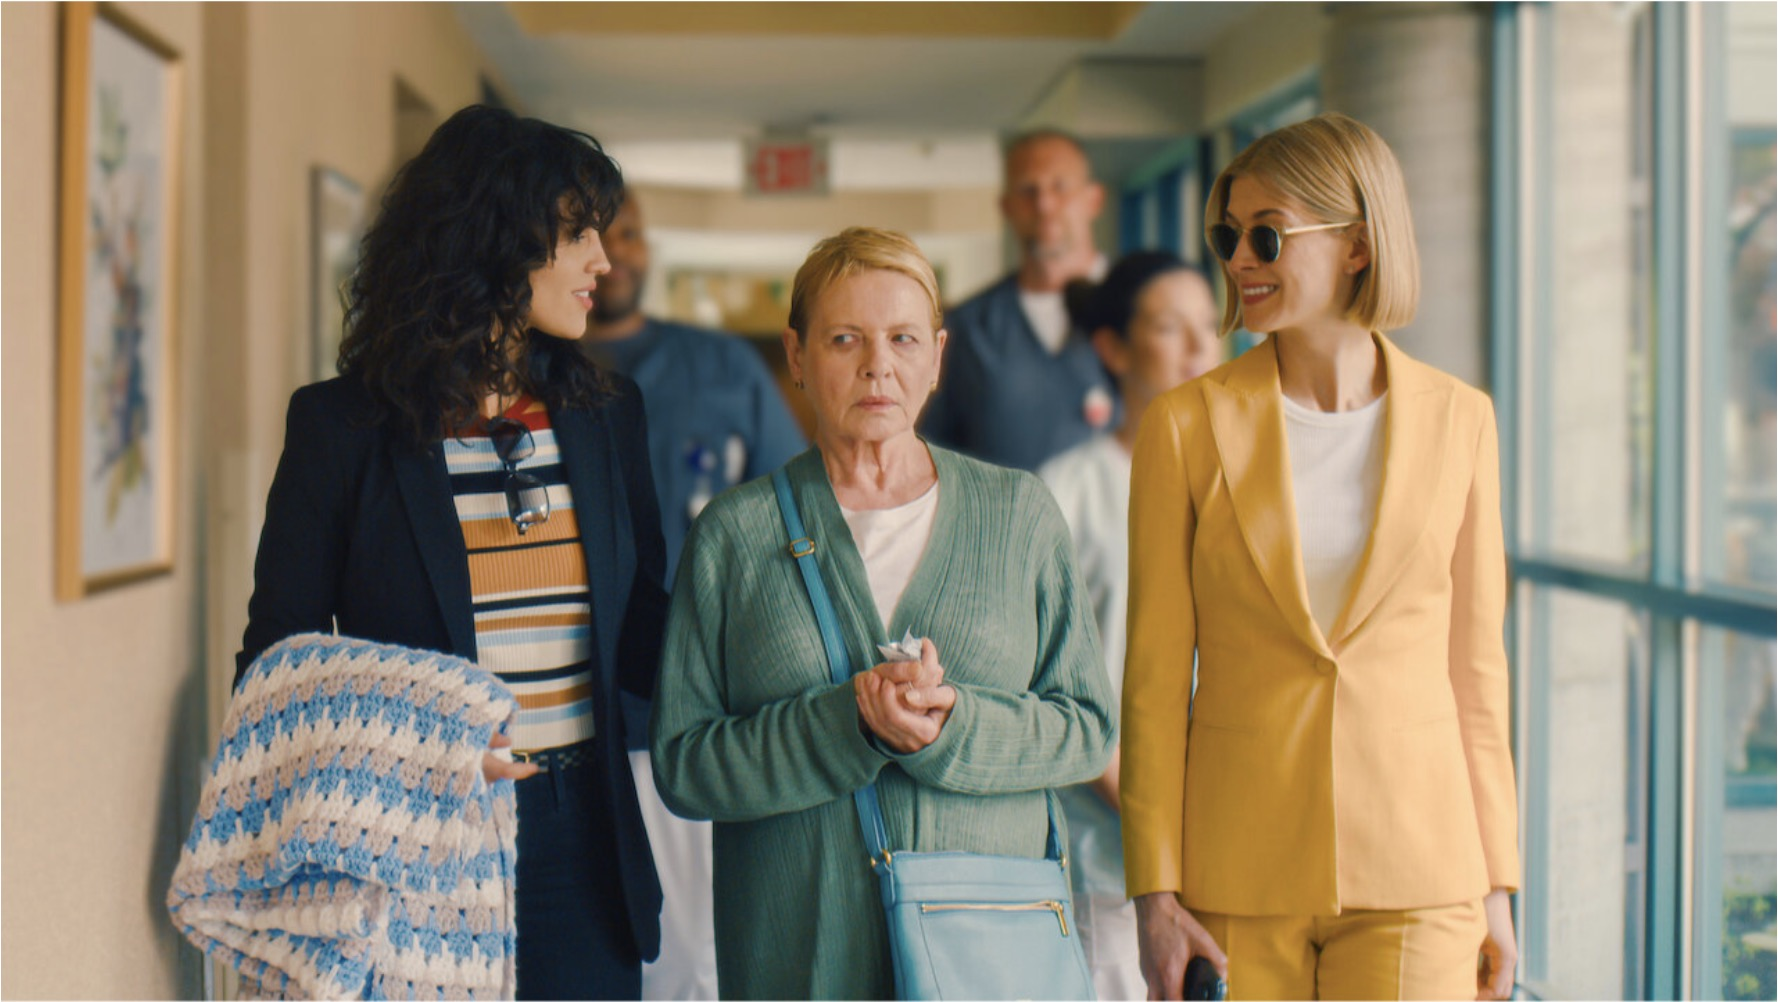 Two younger women walking an older woman down a hallway in a scene from I Care A Lot